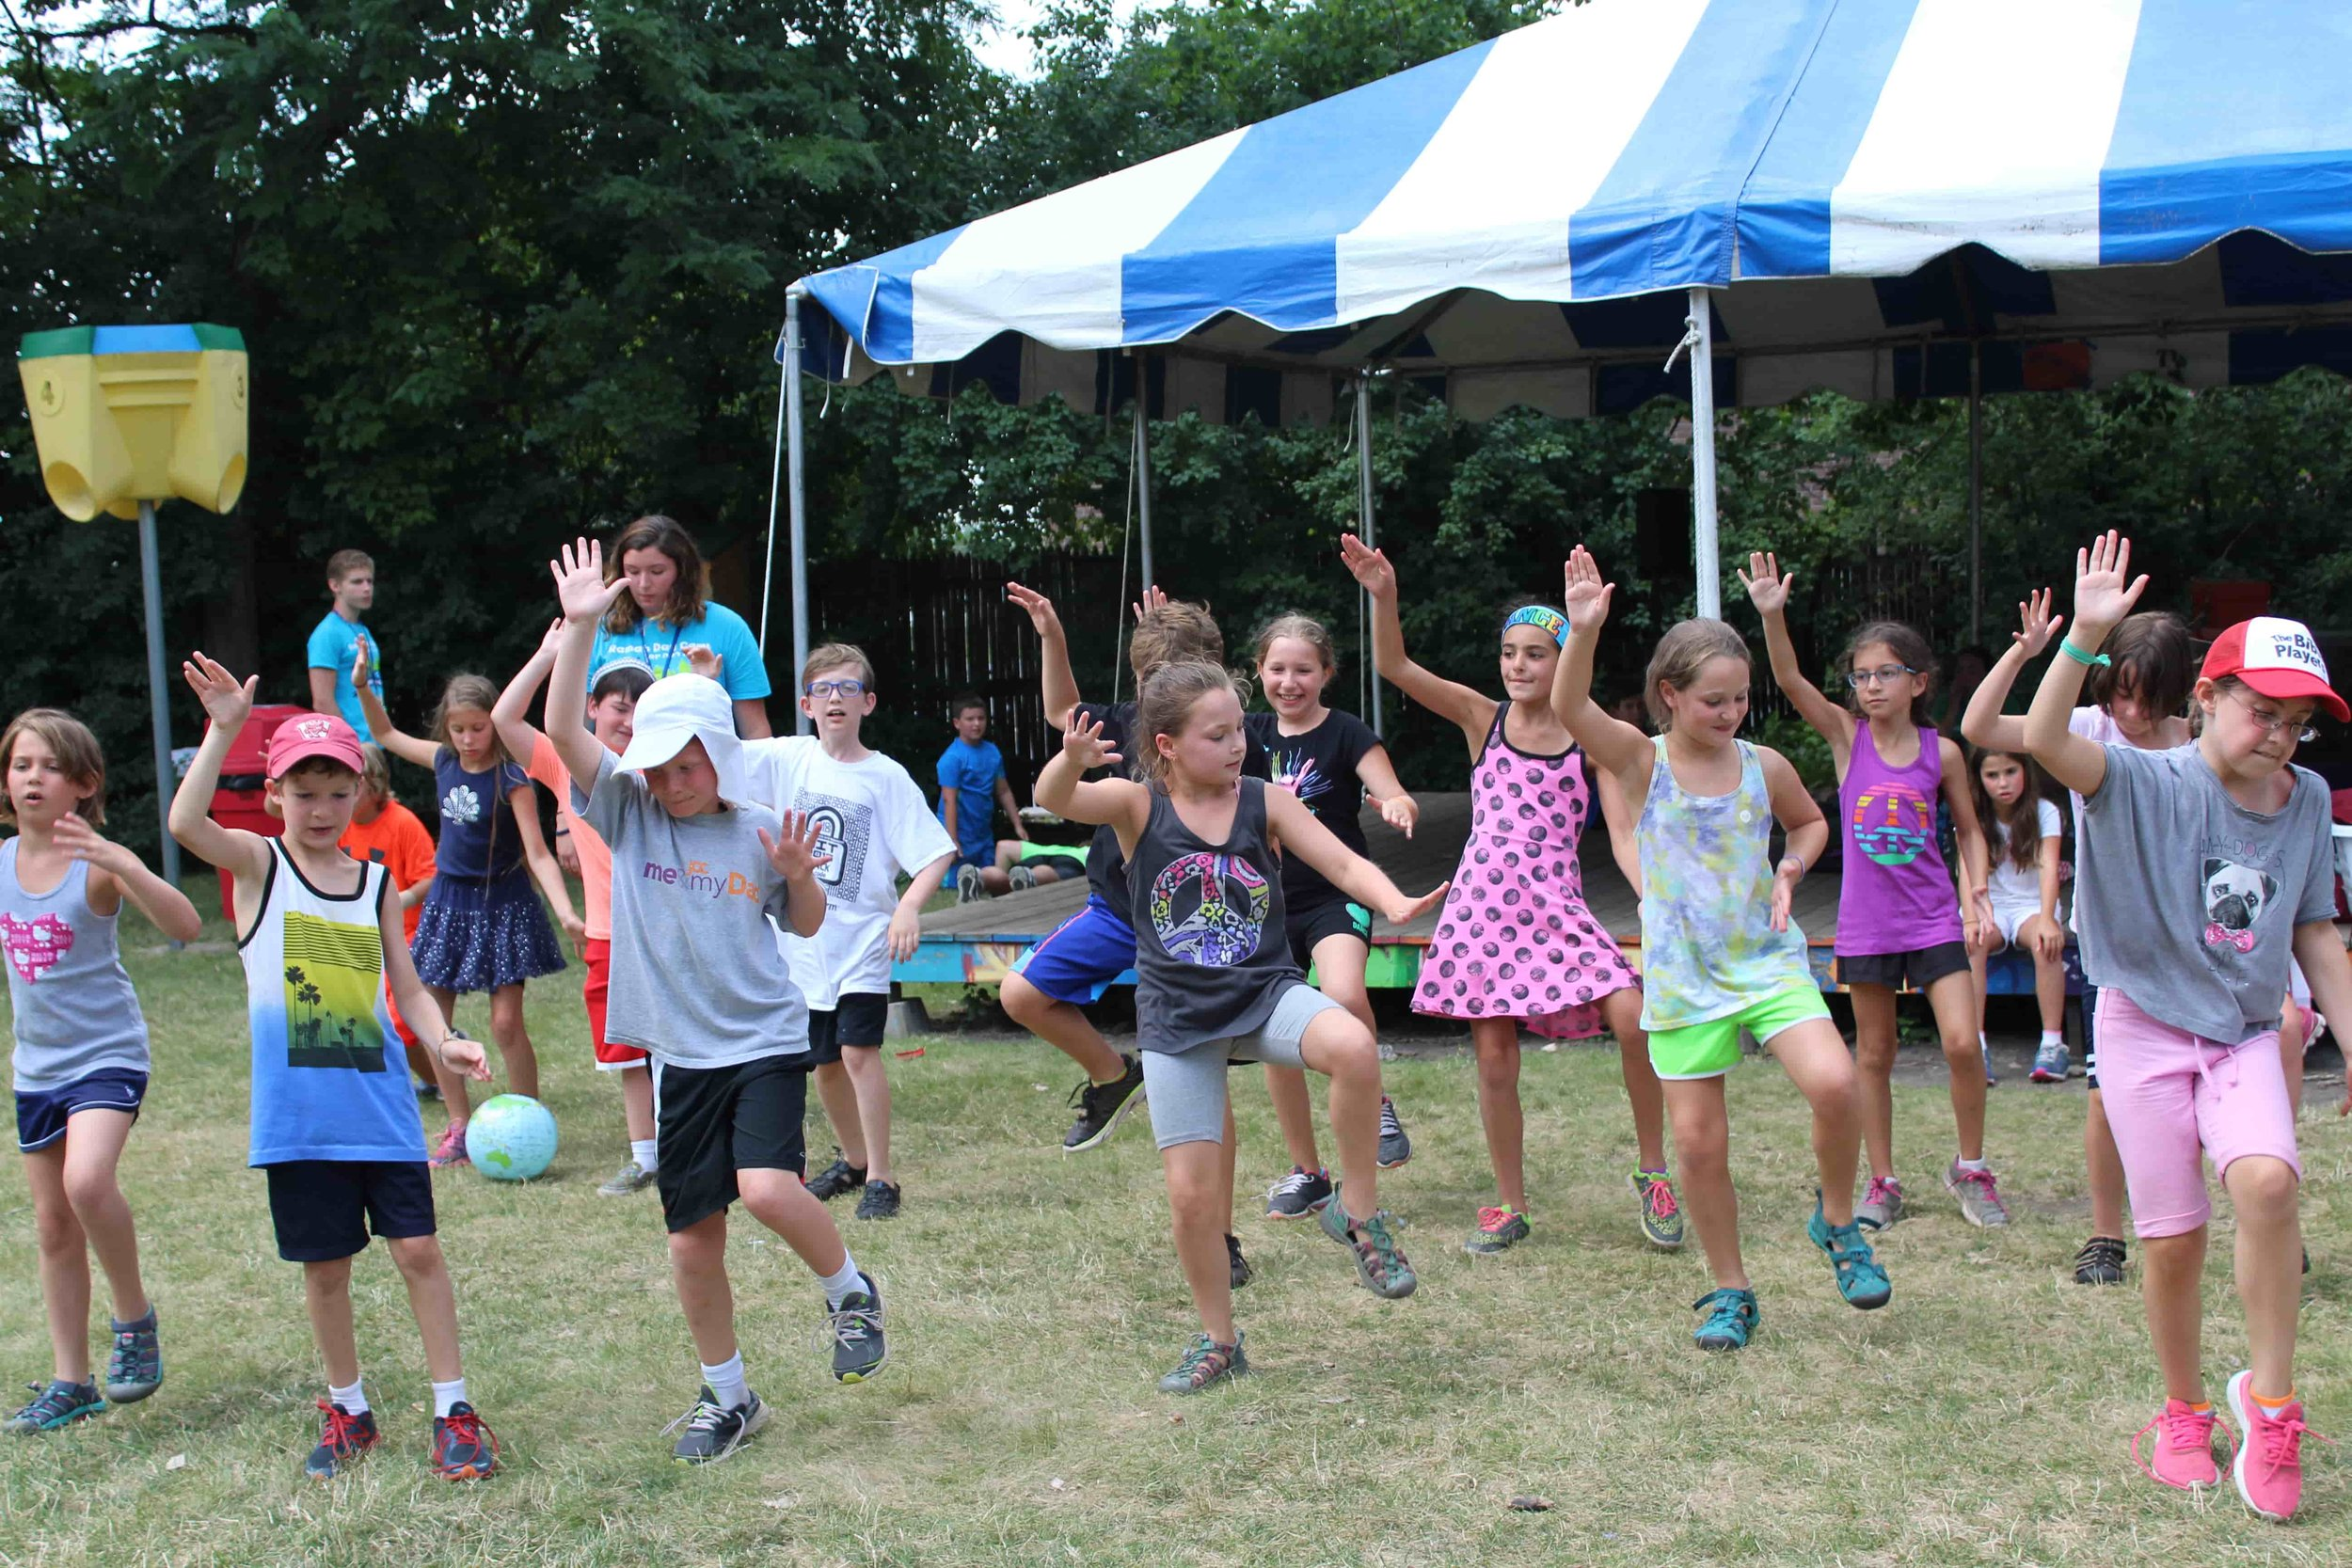 ריקוד / Israeli Dance - Dancing is one of the many fun ways our campers connect to Israel and express their Jewish identities. Every morning, line dances can be seen and heard as the buses unload. In addition to each individual group having time to learn age-appropriate dances, one of the highlights of the week is kikar (field) dancing at the end of hachanah l'Shabbat (Shabbat preparation). Imagine 200 campers and staff all dancing together at the same time!